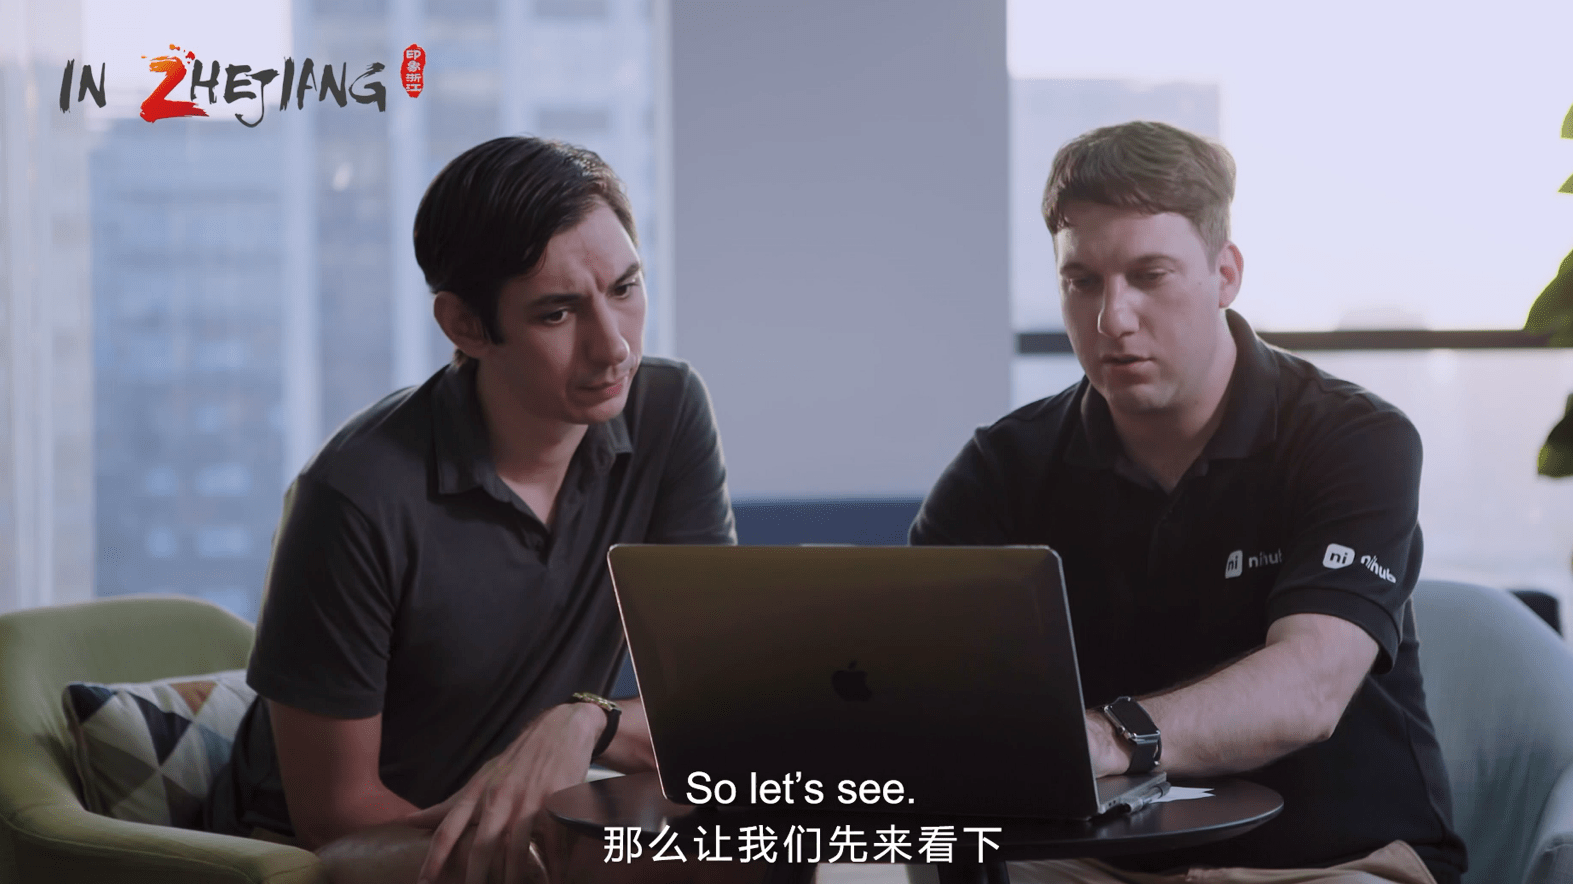 【Video Series】How to get a working permit in China?